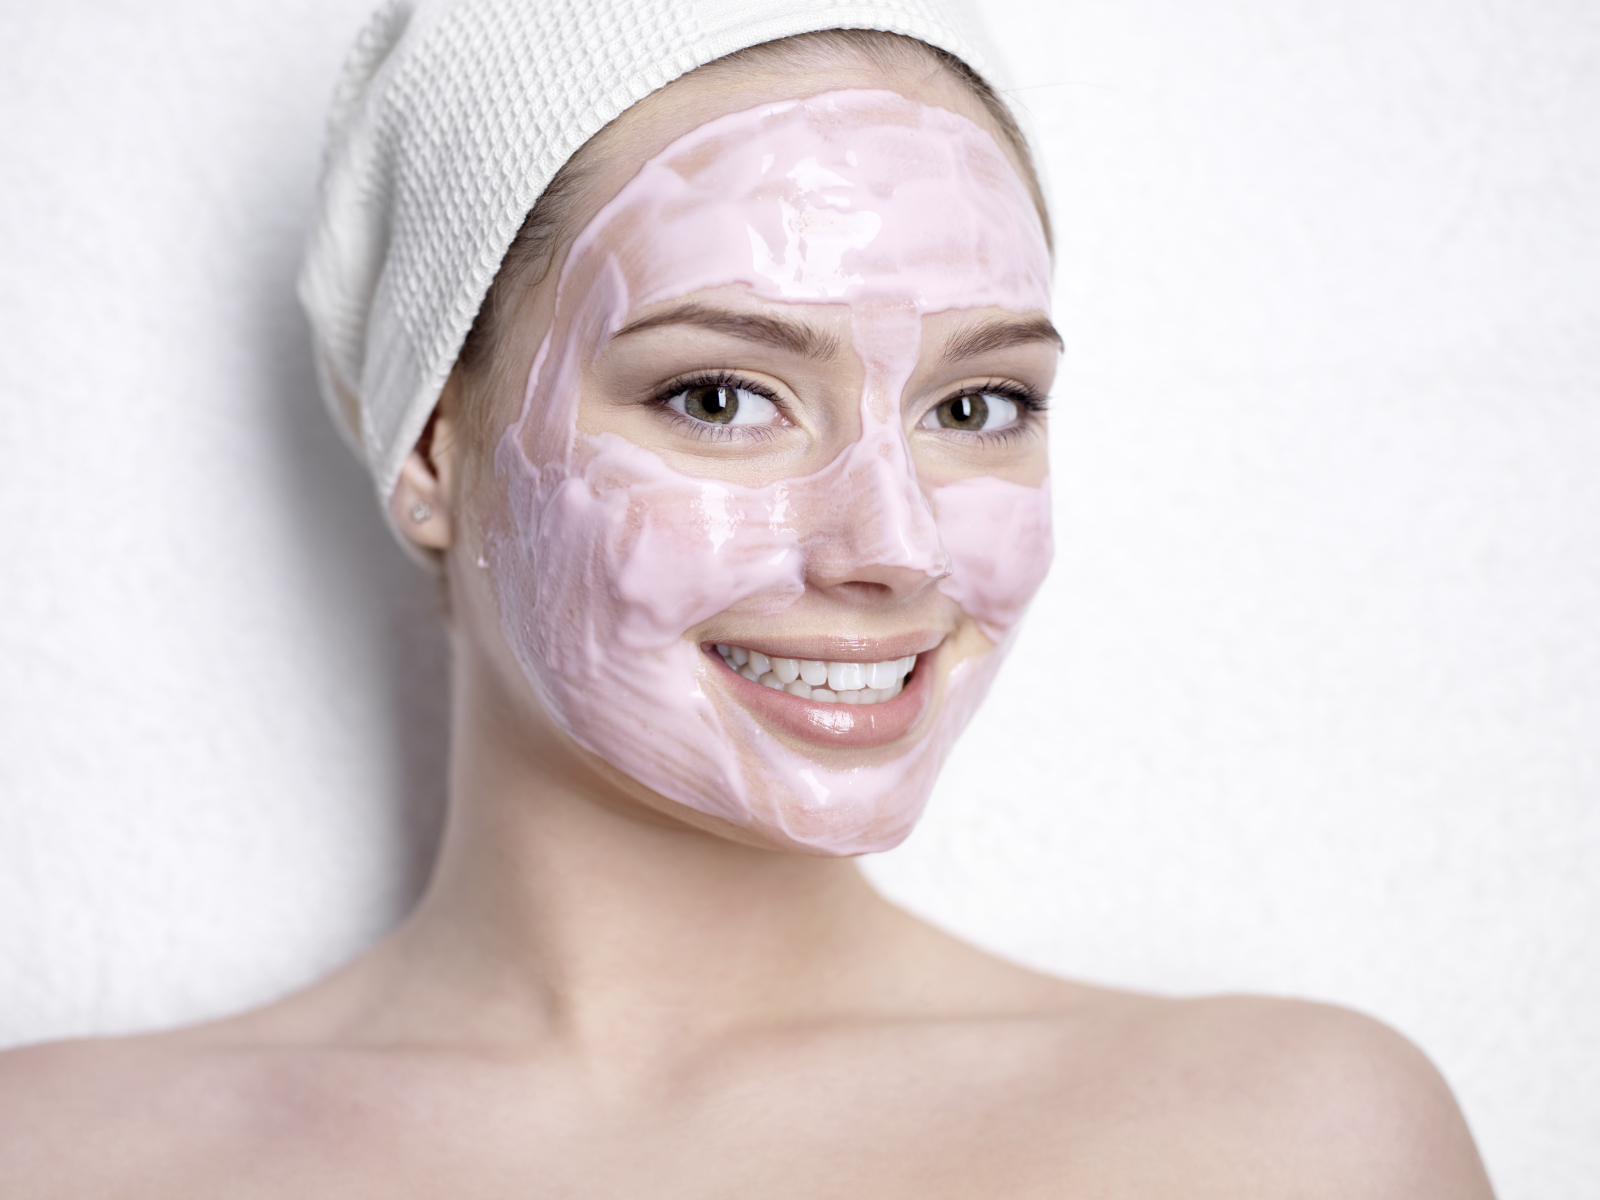 Effective Homemade Acne Cleansers for Oily Skin